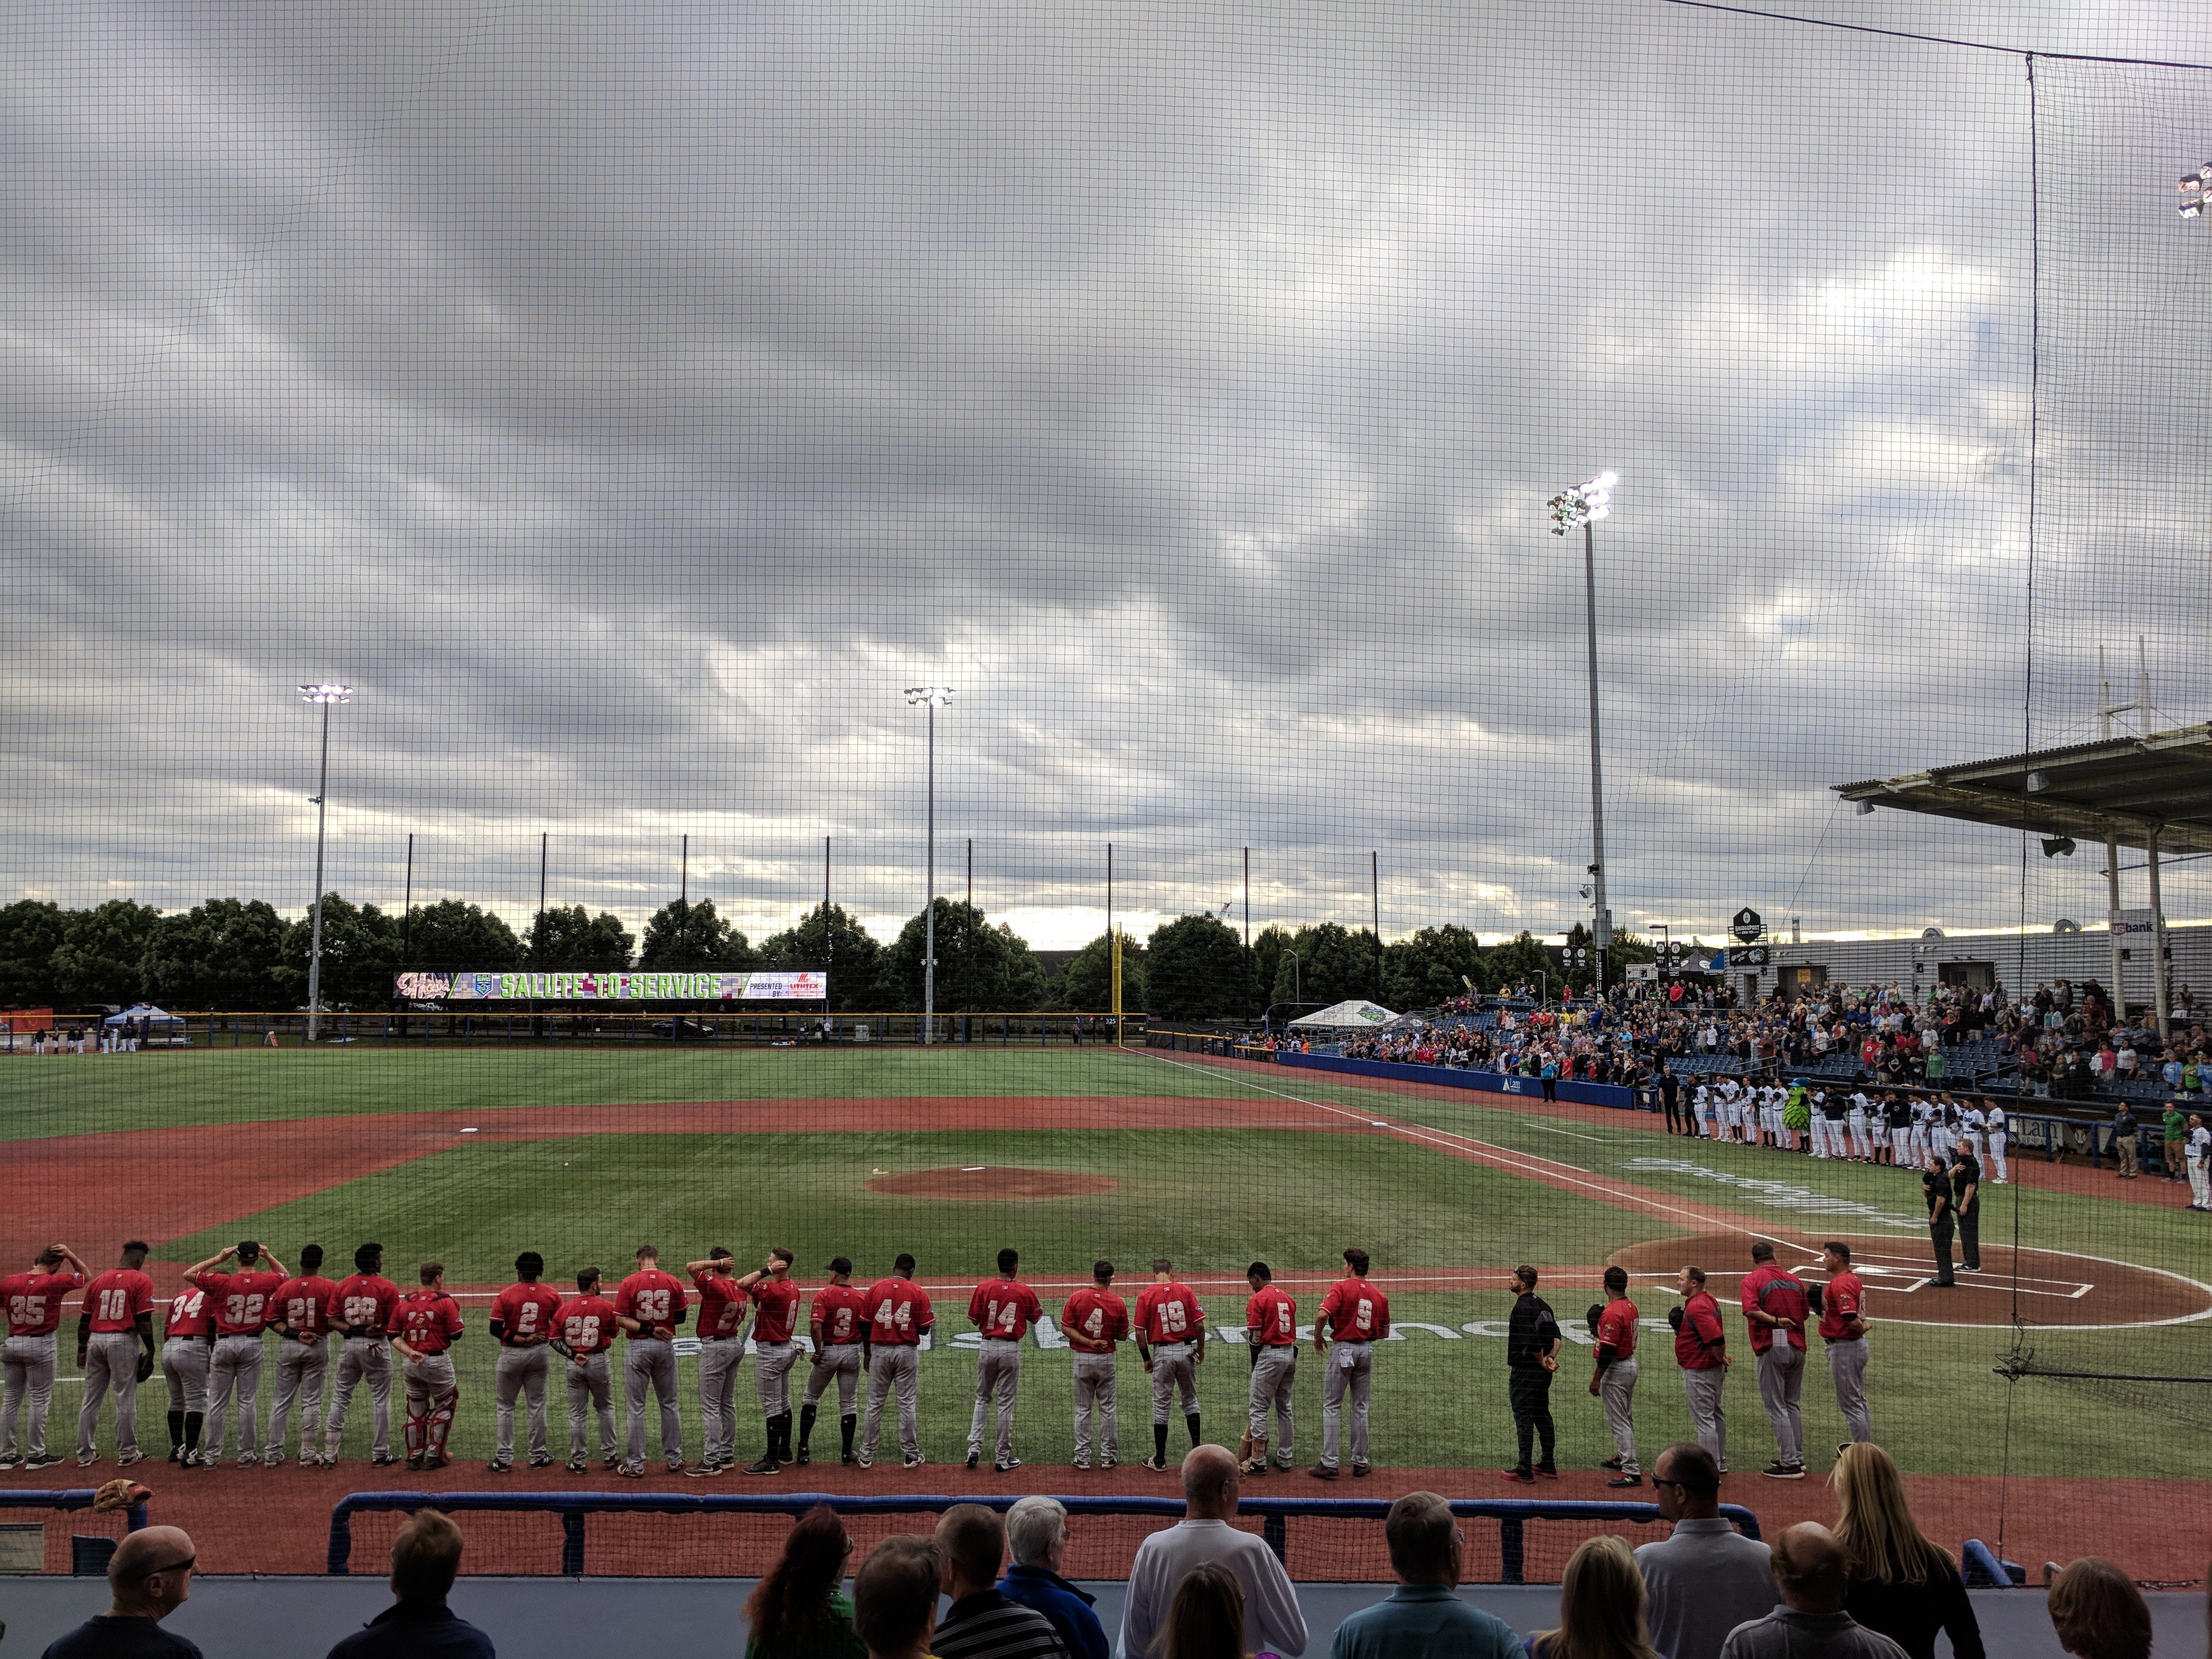 The Vancouver Canadians visiting Ron Tonkin Field in Hillsboro, Oregon on August 2, 2018.